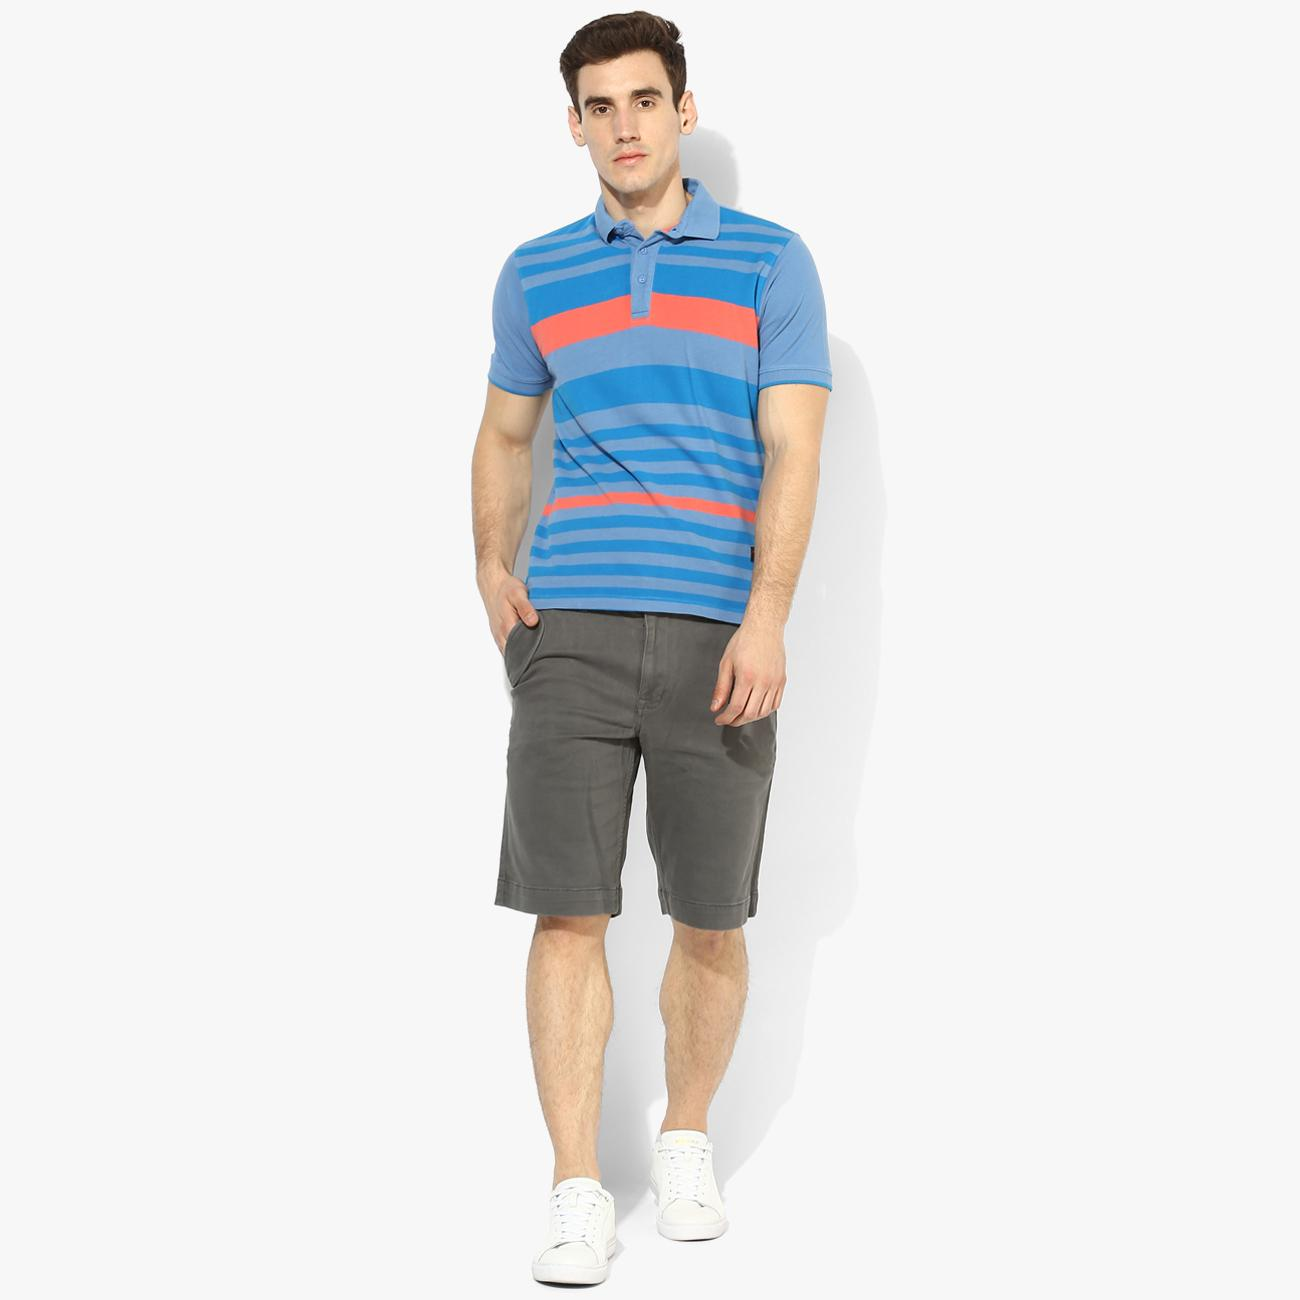 Gray Shorts for Men at Red Chief